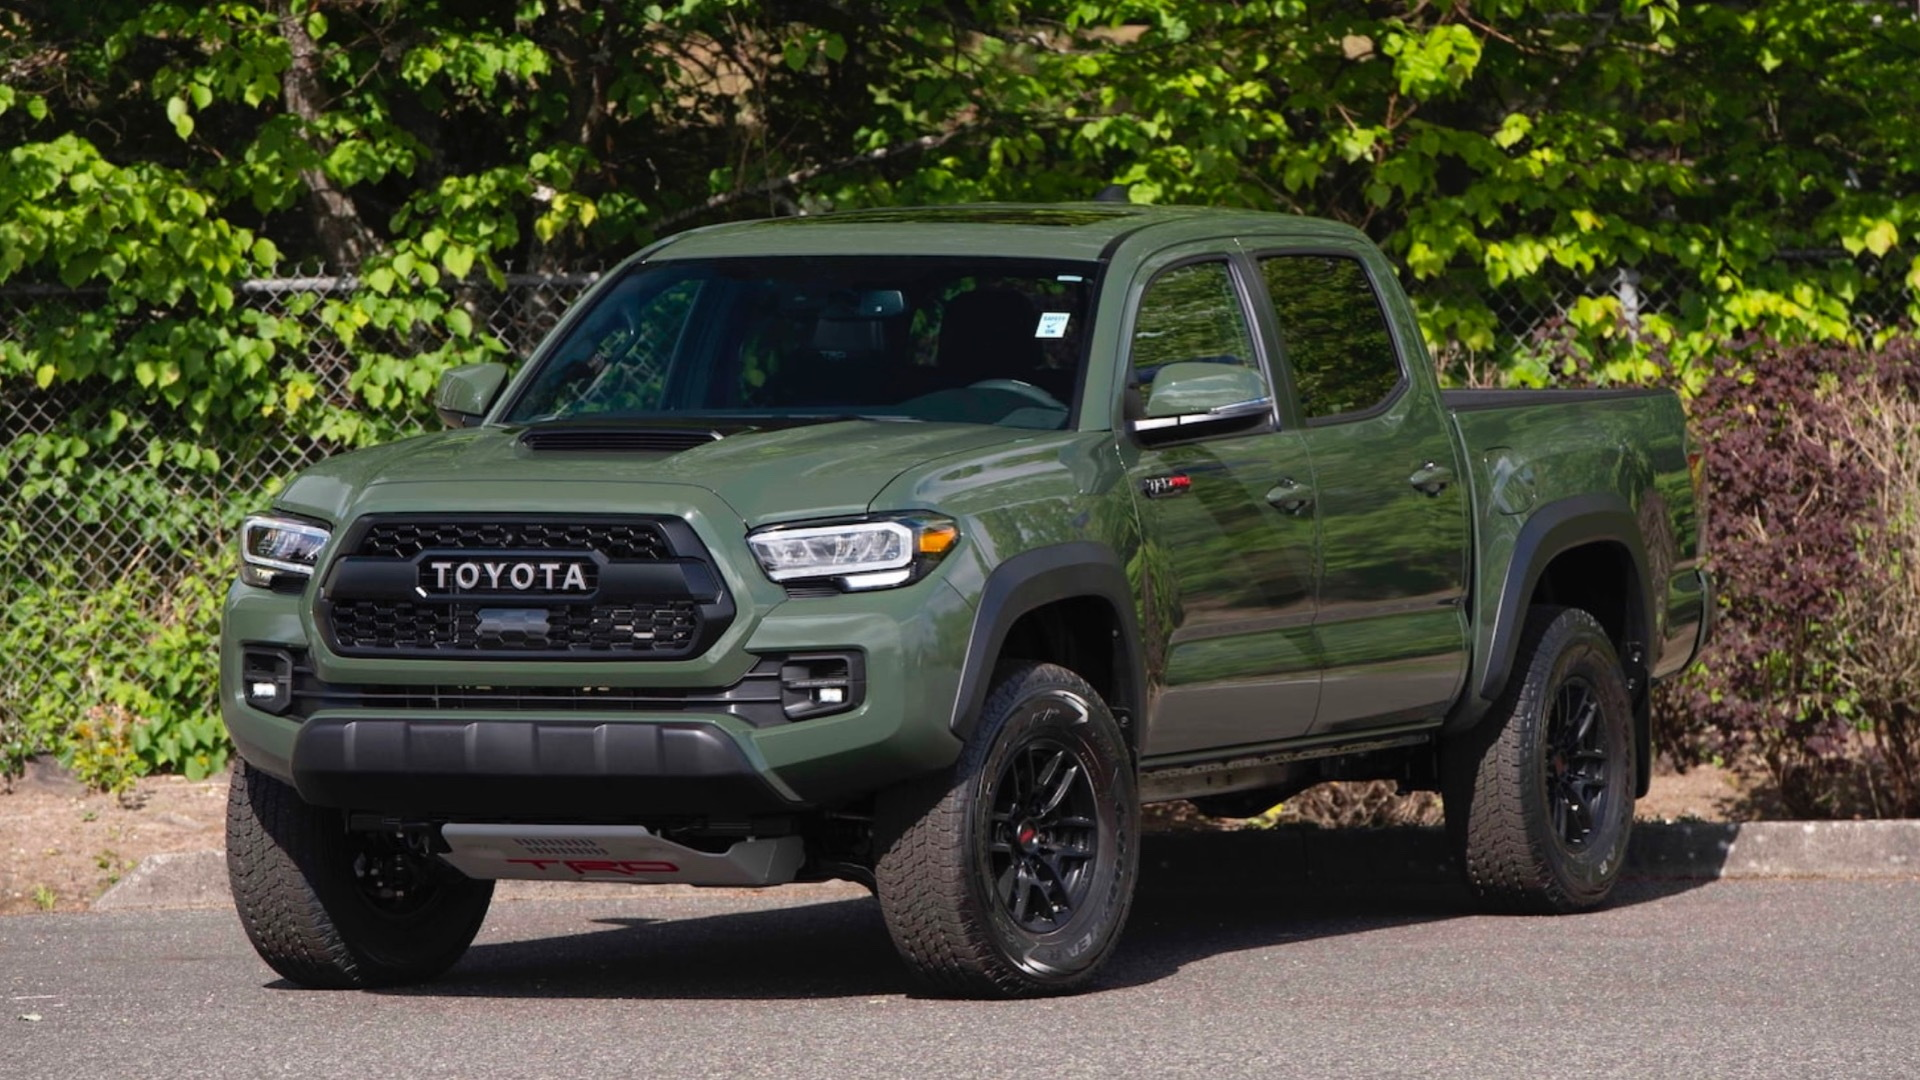 2020 Toyota Tacoma TRD Pro - One millionth Tacoma built (Photo by Mecum Auctions)